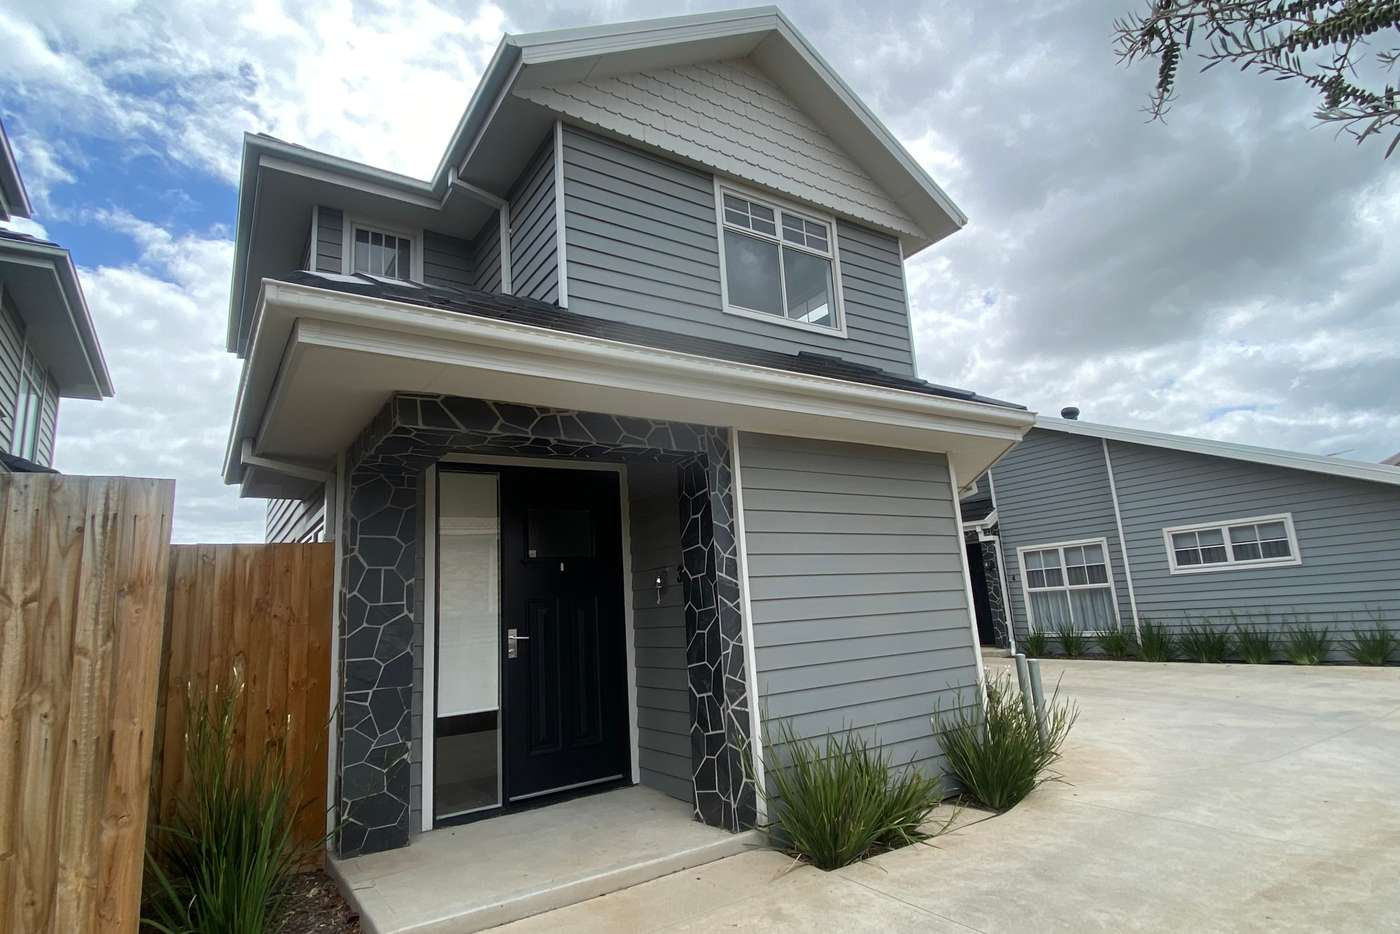 Main view of Homely townhouse listing, 3/48 Mitchells Lane, Sunbury VIC 3429